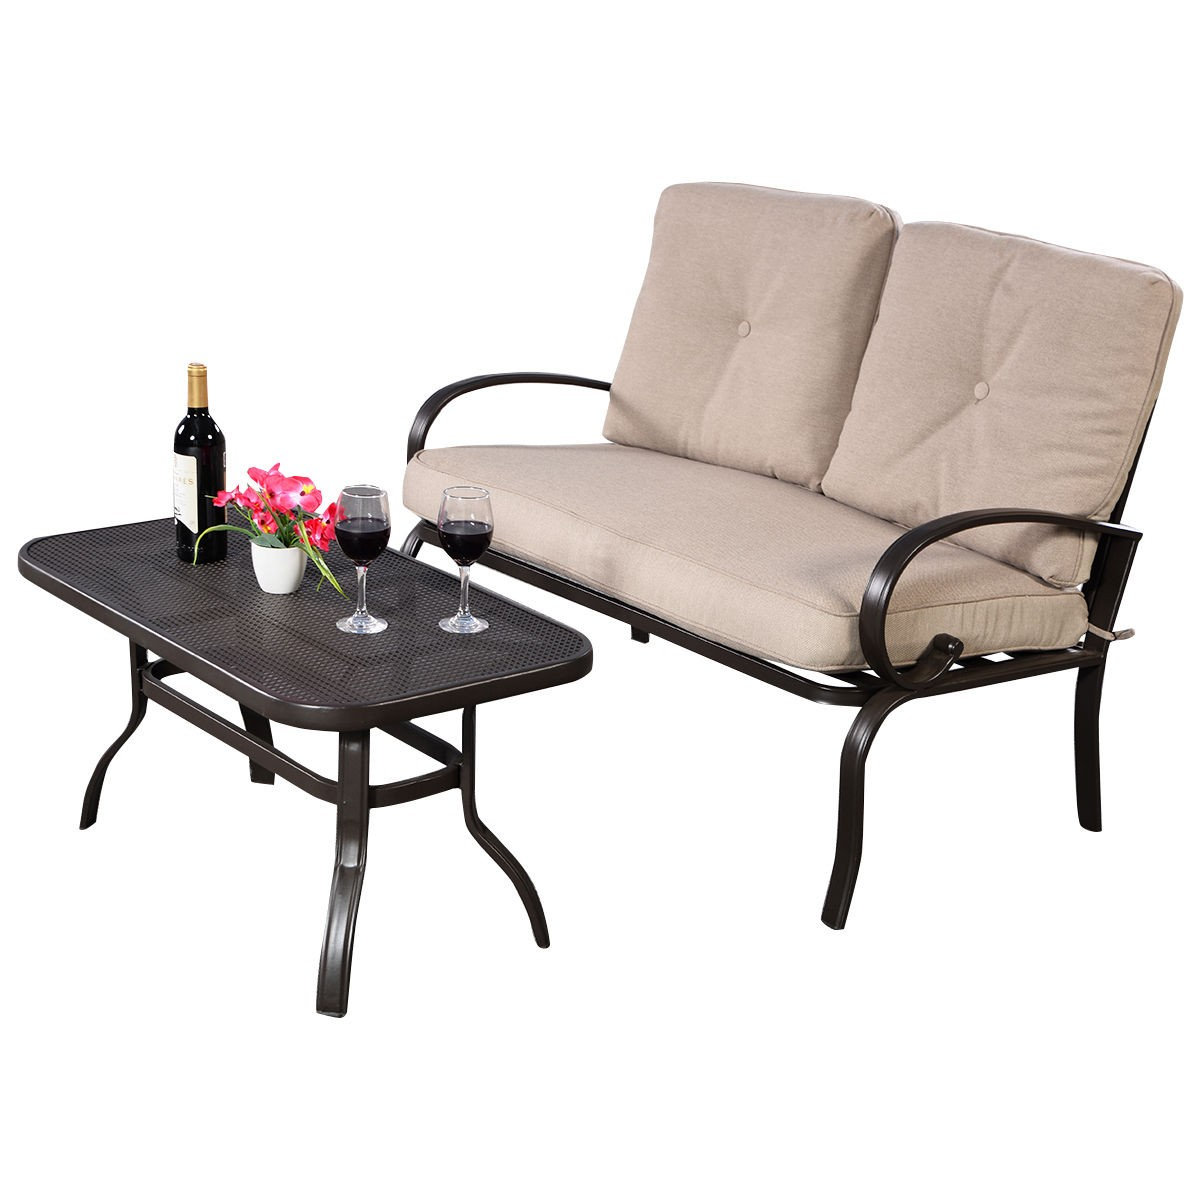 2 pcs patio outdoor loveseat coffee table set furniture bench with cushion ebay Loveseat cushions for outdoor furniture